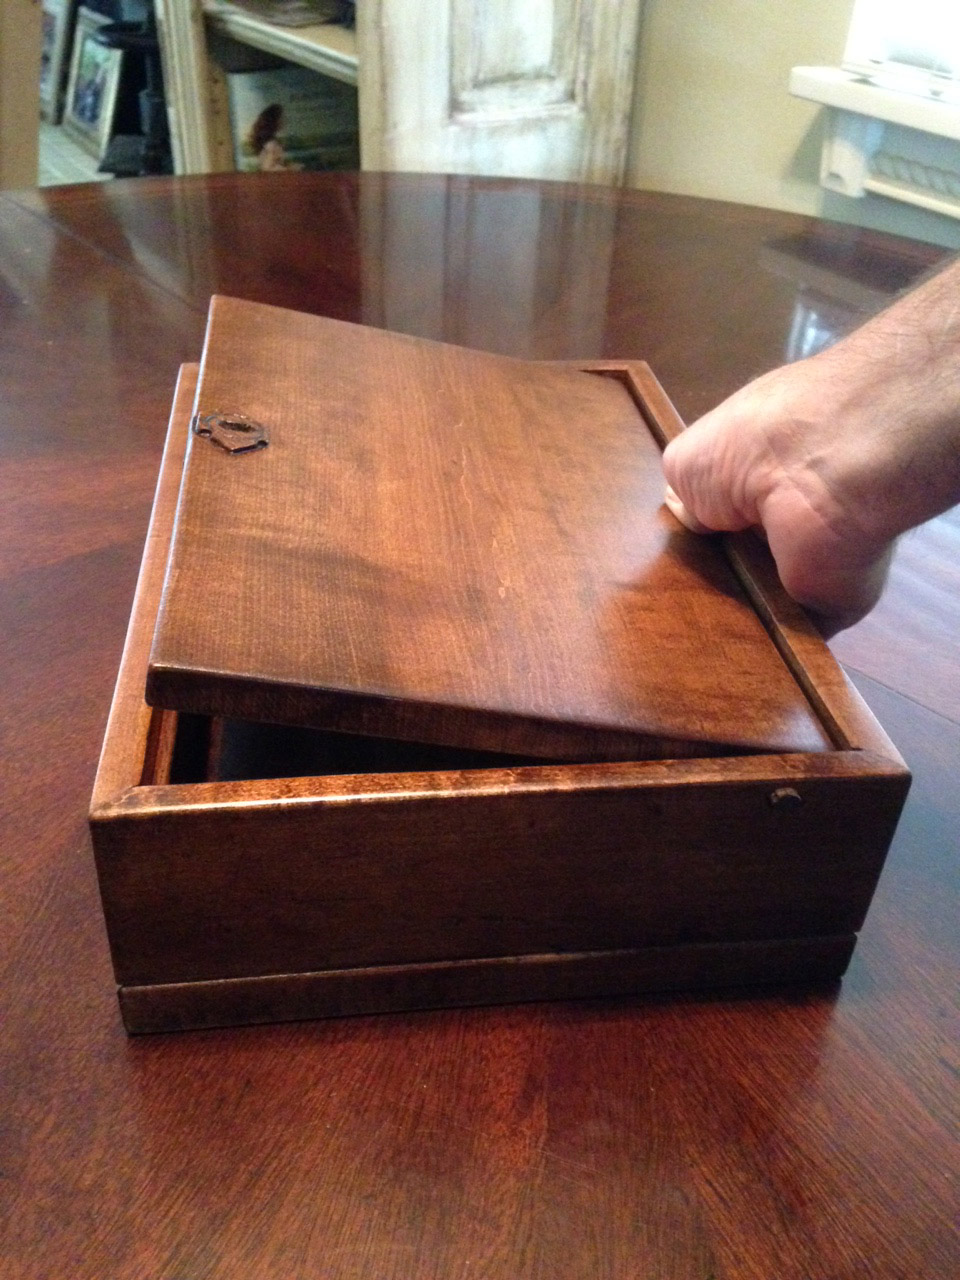 How To Build A Small Wooden Box Using The Parts From An Old